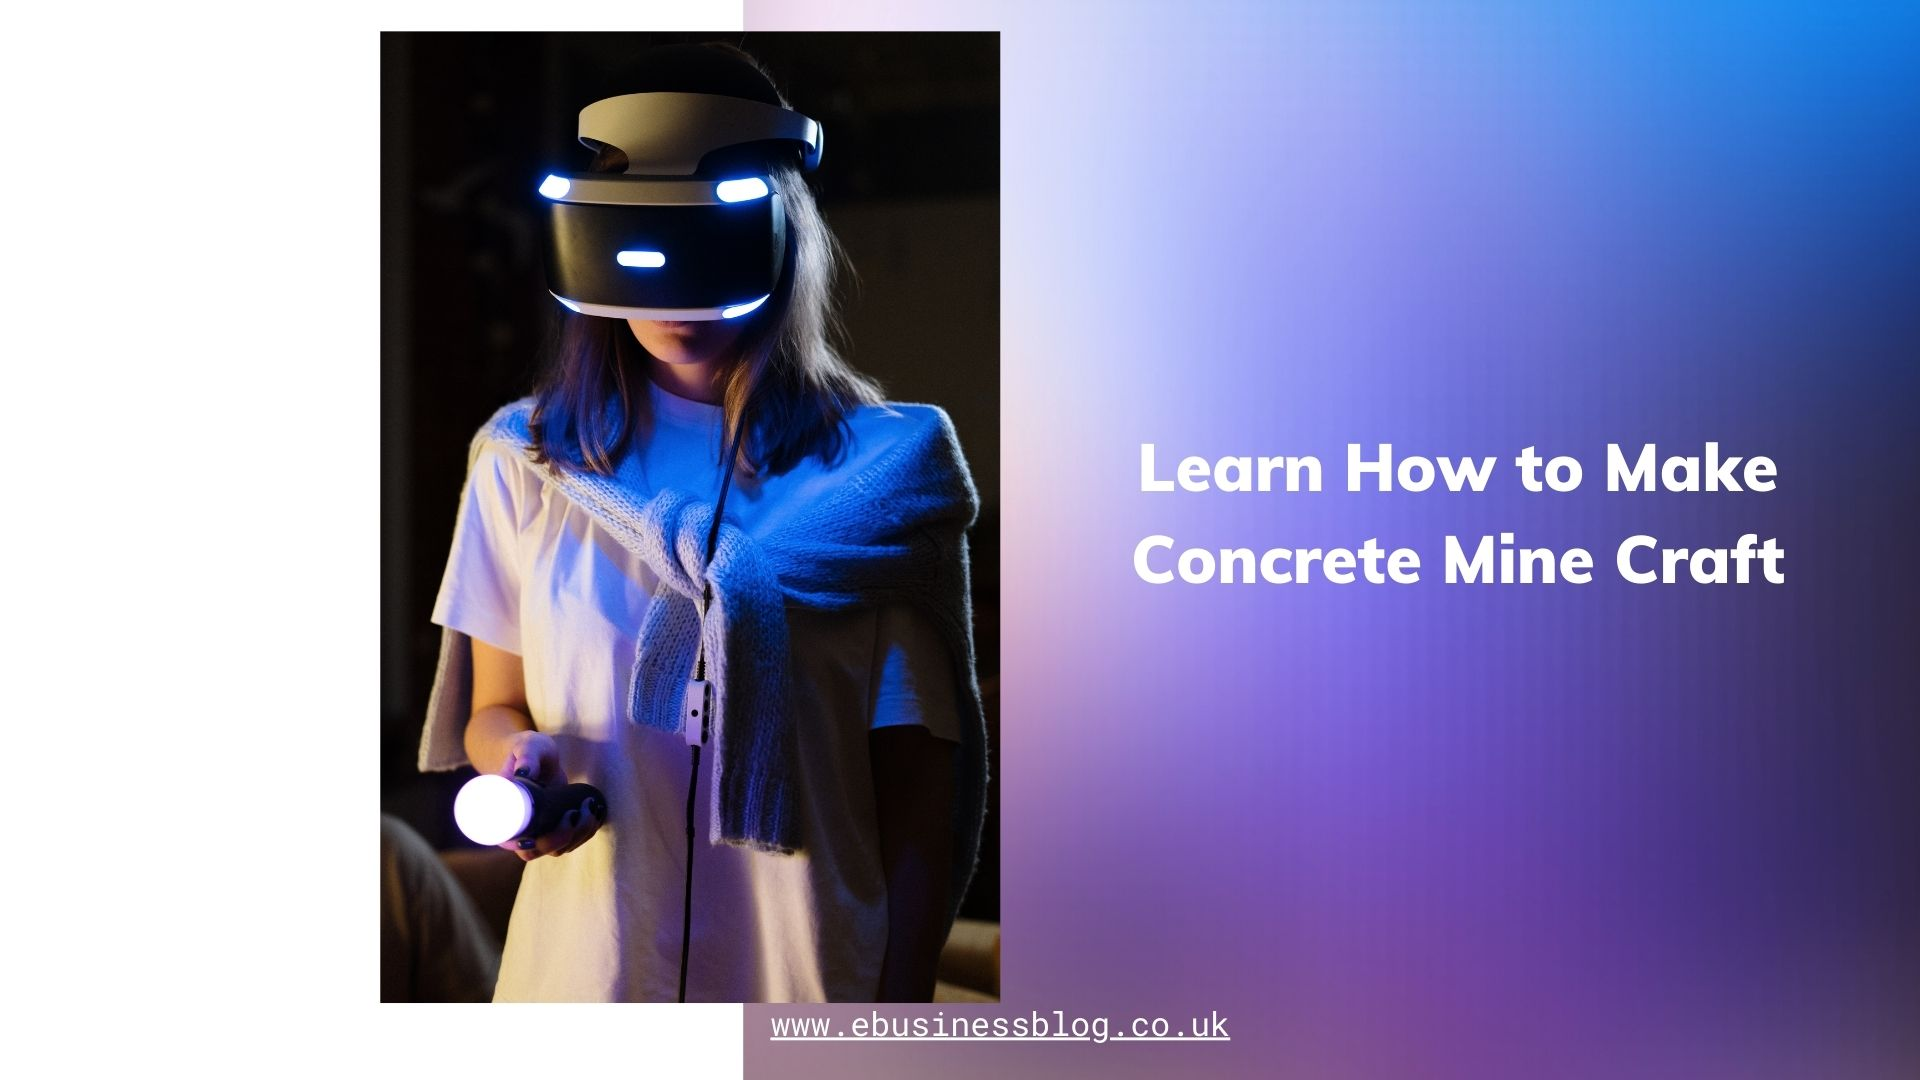 Learn How to Make Concrete Mine Craft